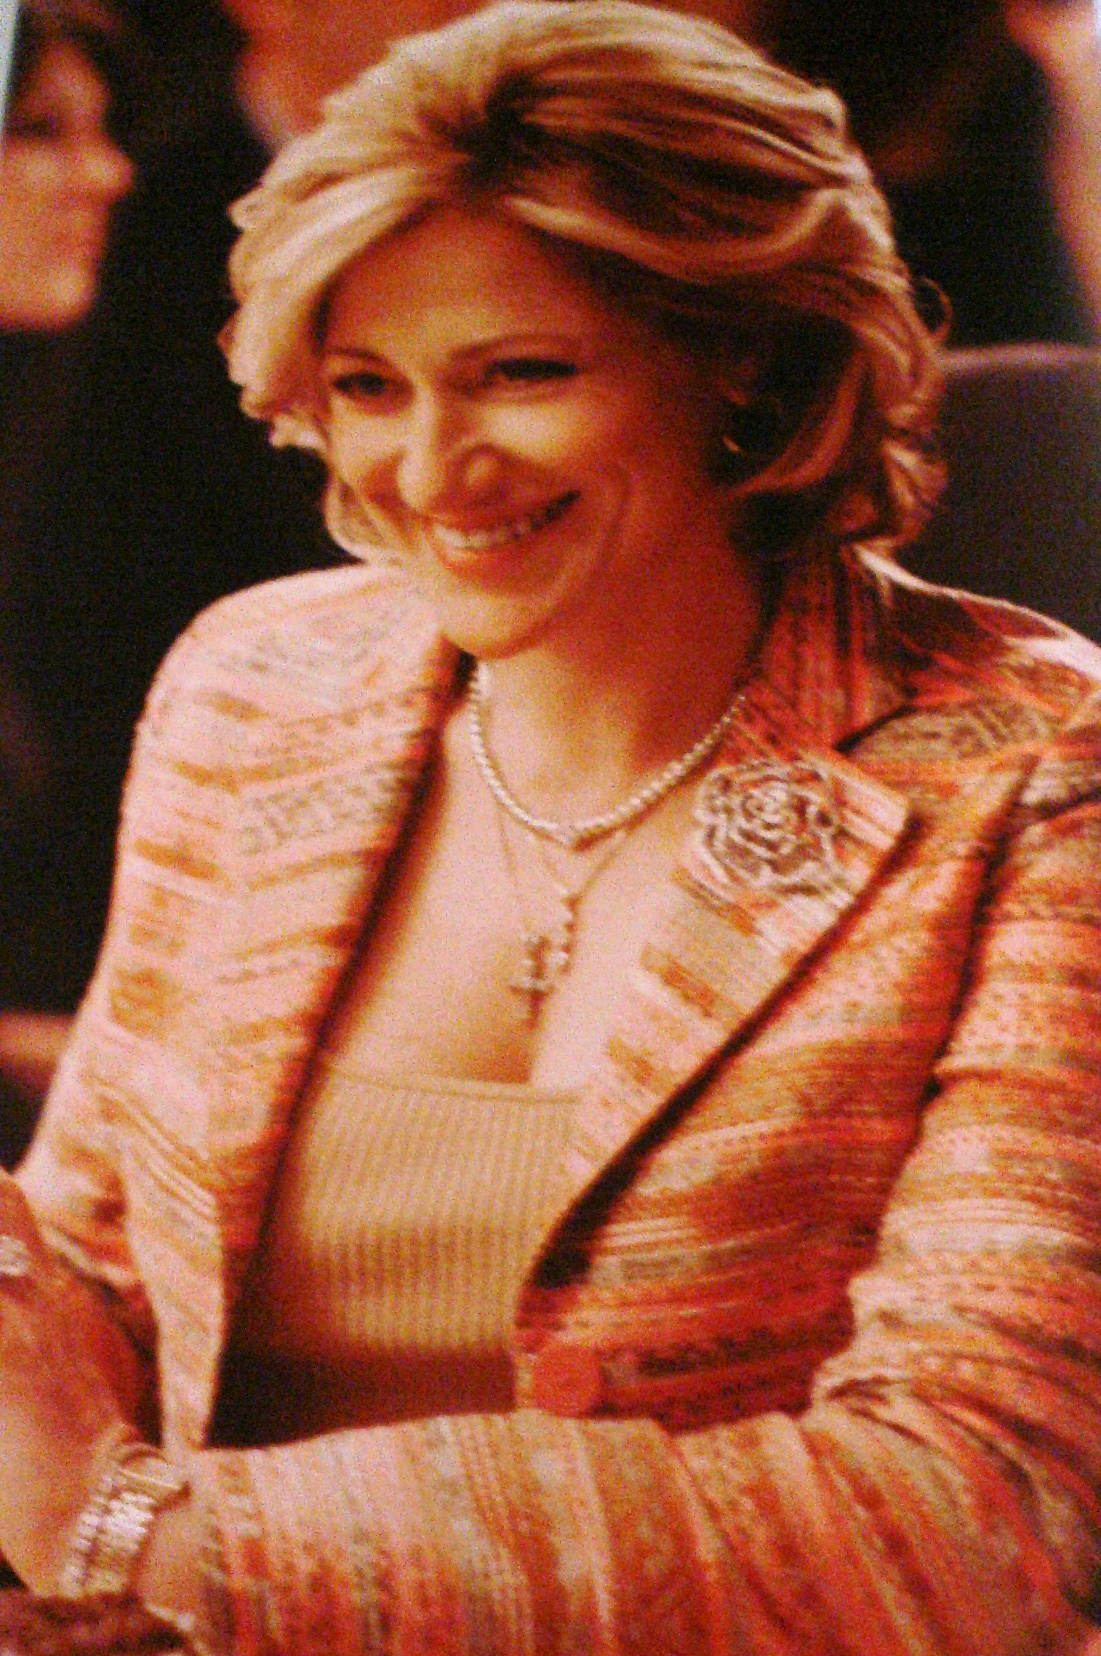 Edie falco in the sopranos 19992007 2 - 3 9